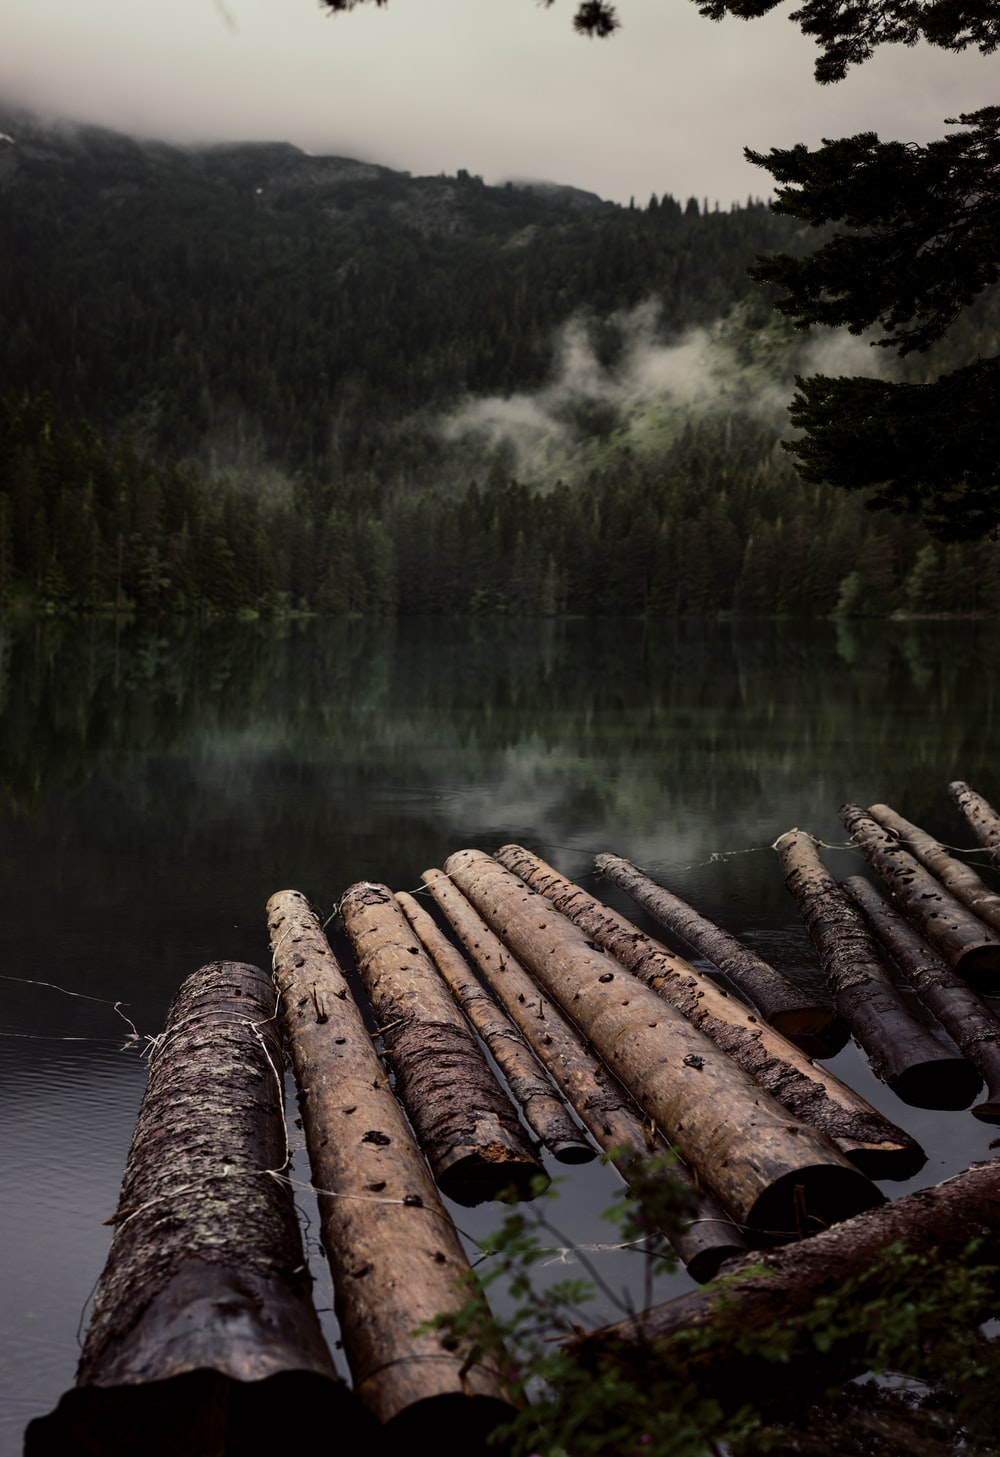 chopped logs on water